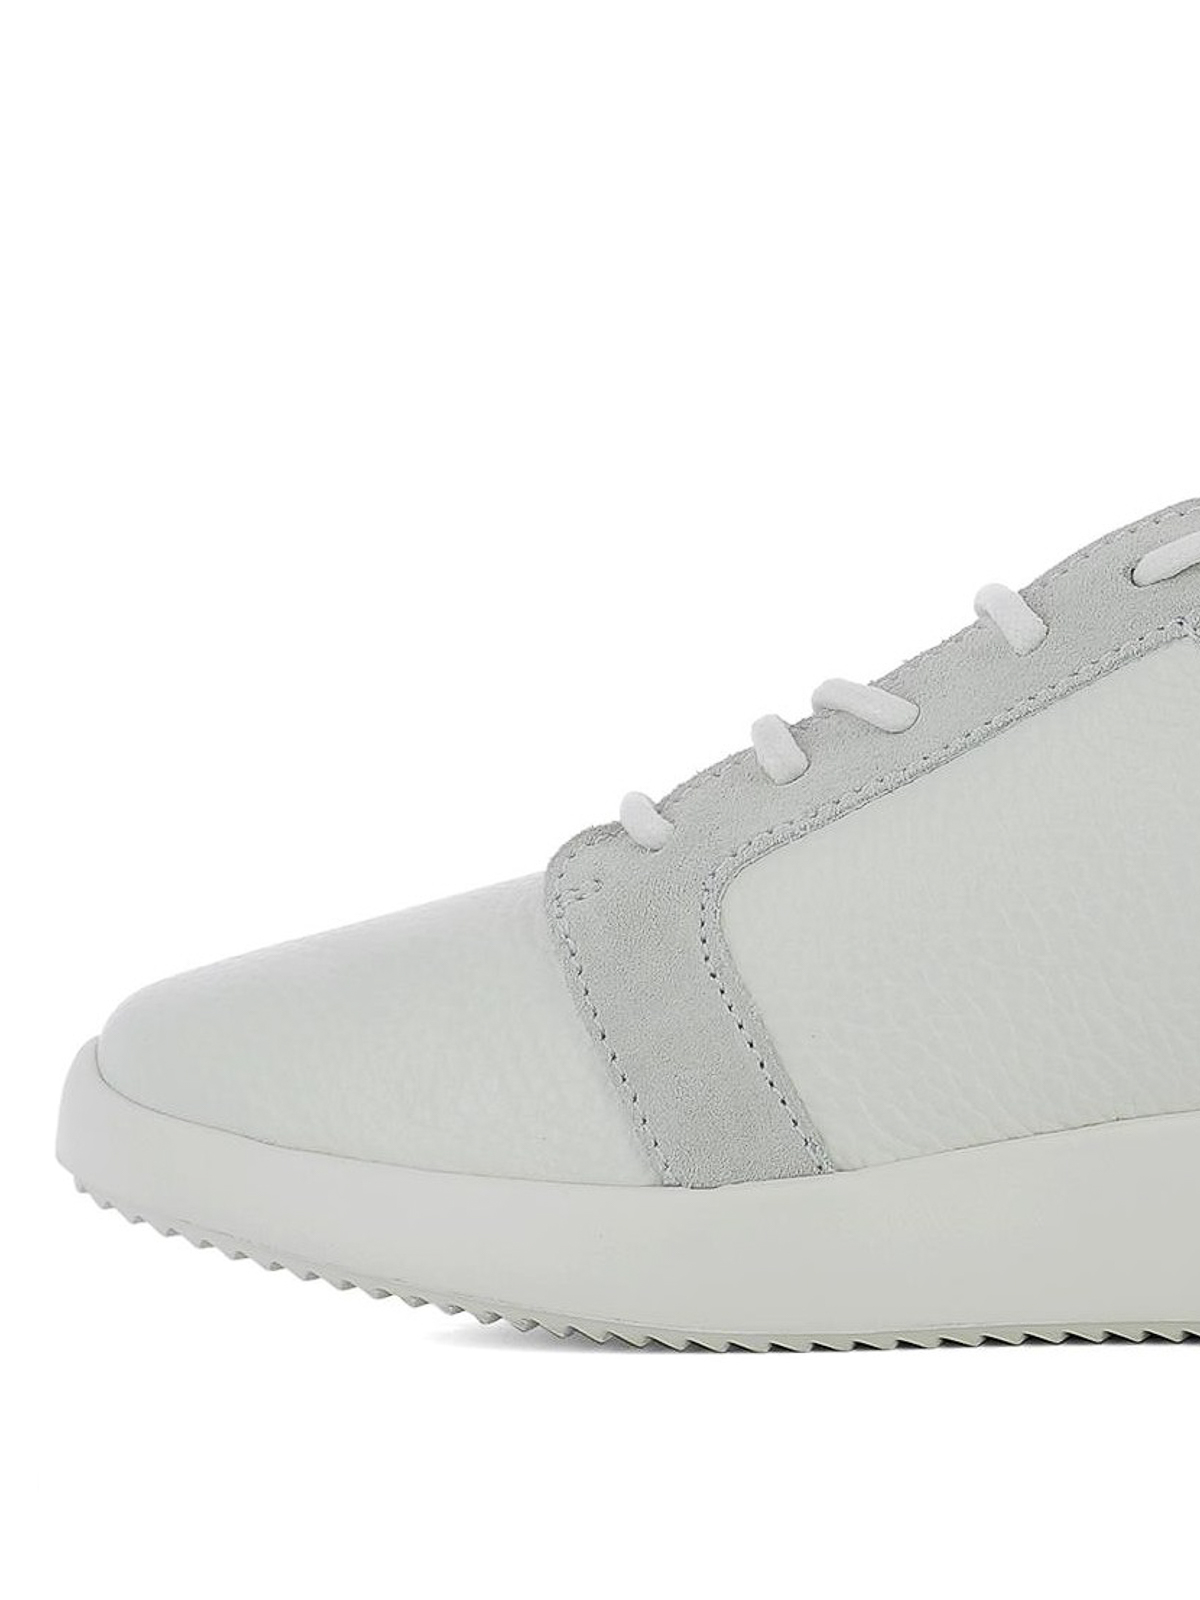 b1a9a49352f7 Giuseppe Zanotti - G Runner leather sneakers - trainers - RS80078001